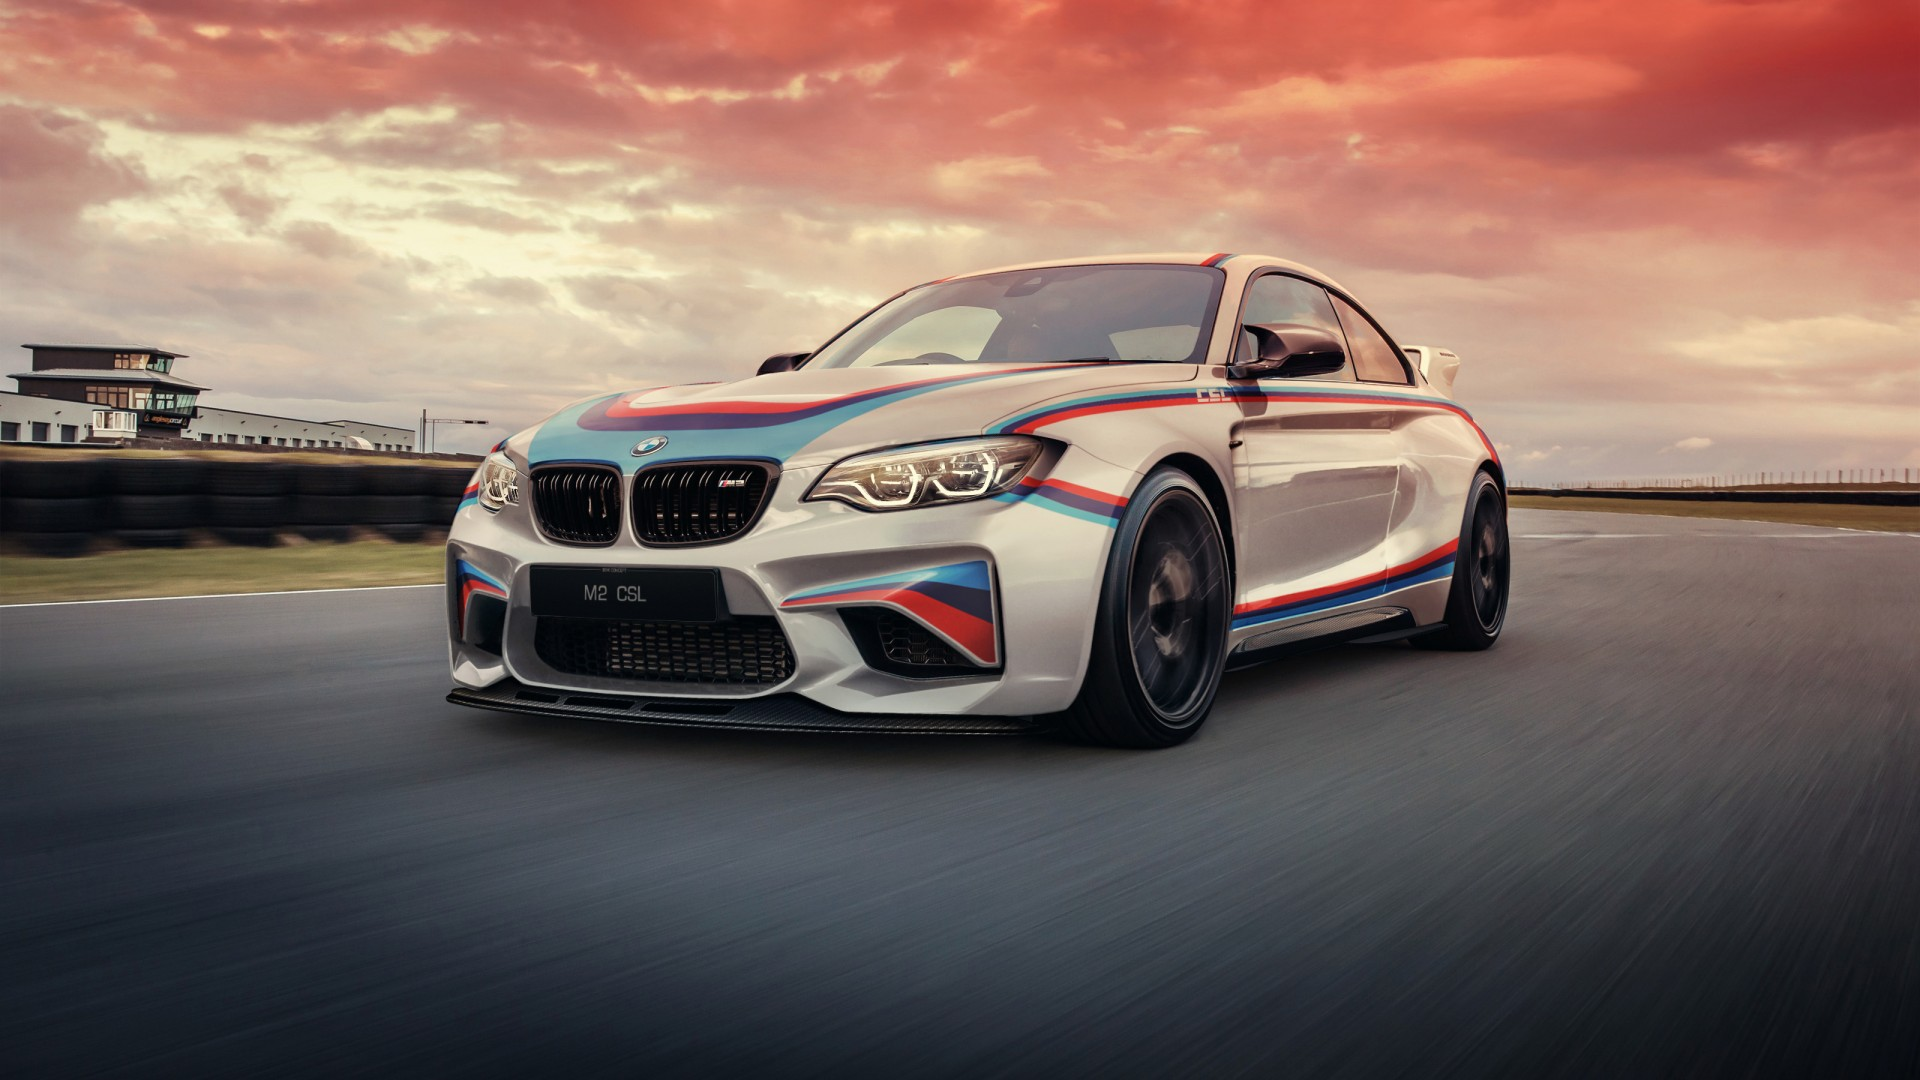 Cars Wallpapers: 2017 BMW M2 CSL Wallpaper